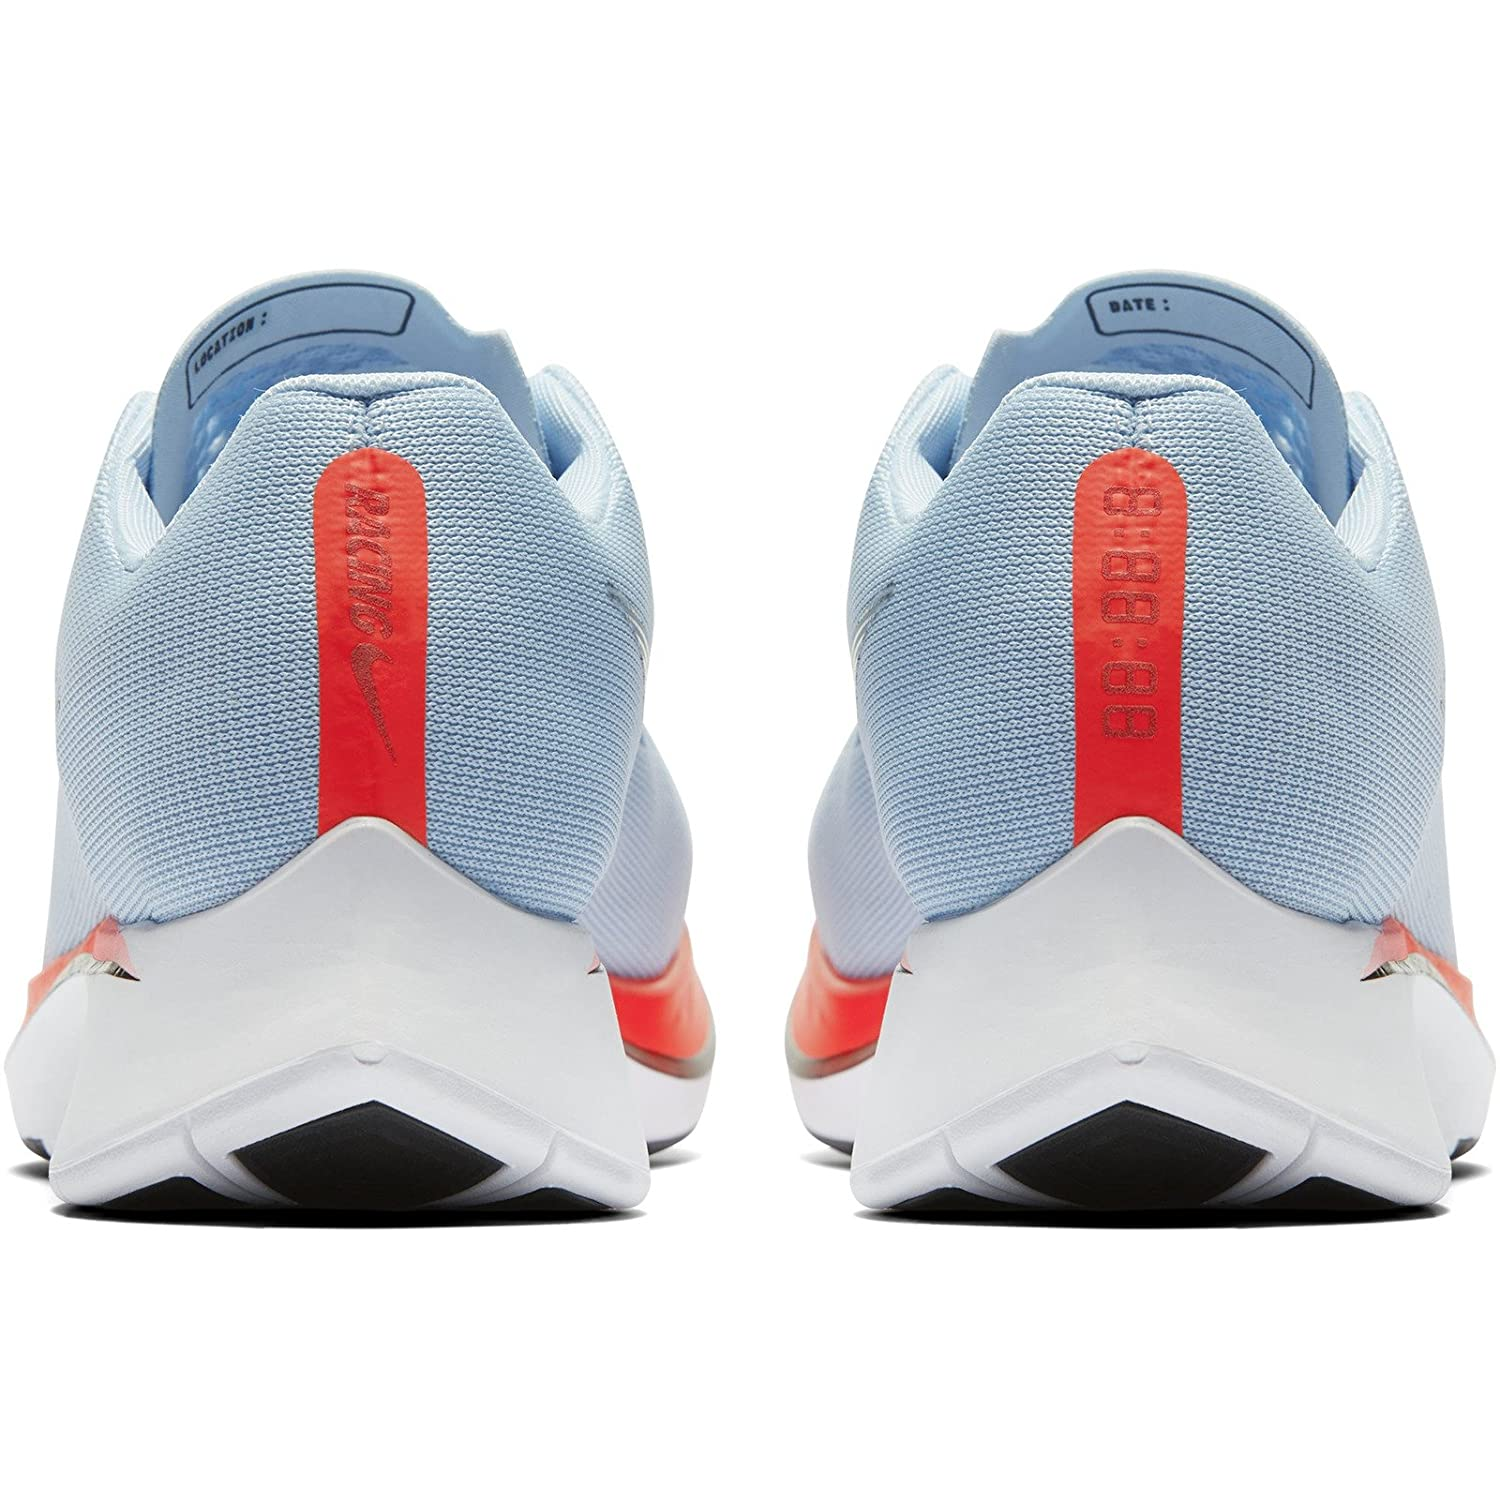 a399d9b67 NIKE Wmns Nike Air Max 2015 Womens Running Shoes  Amazon.co.uk  Shoes   Bags